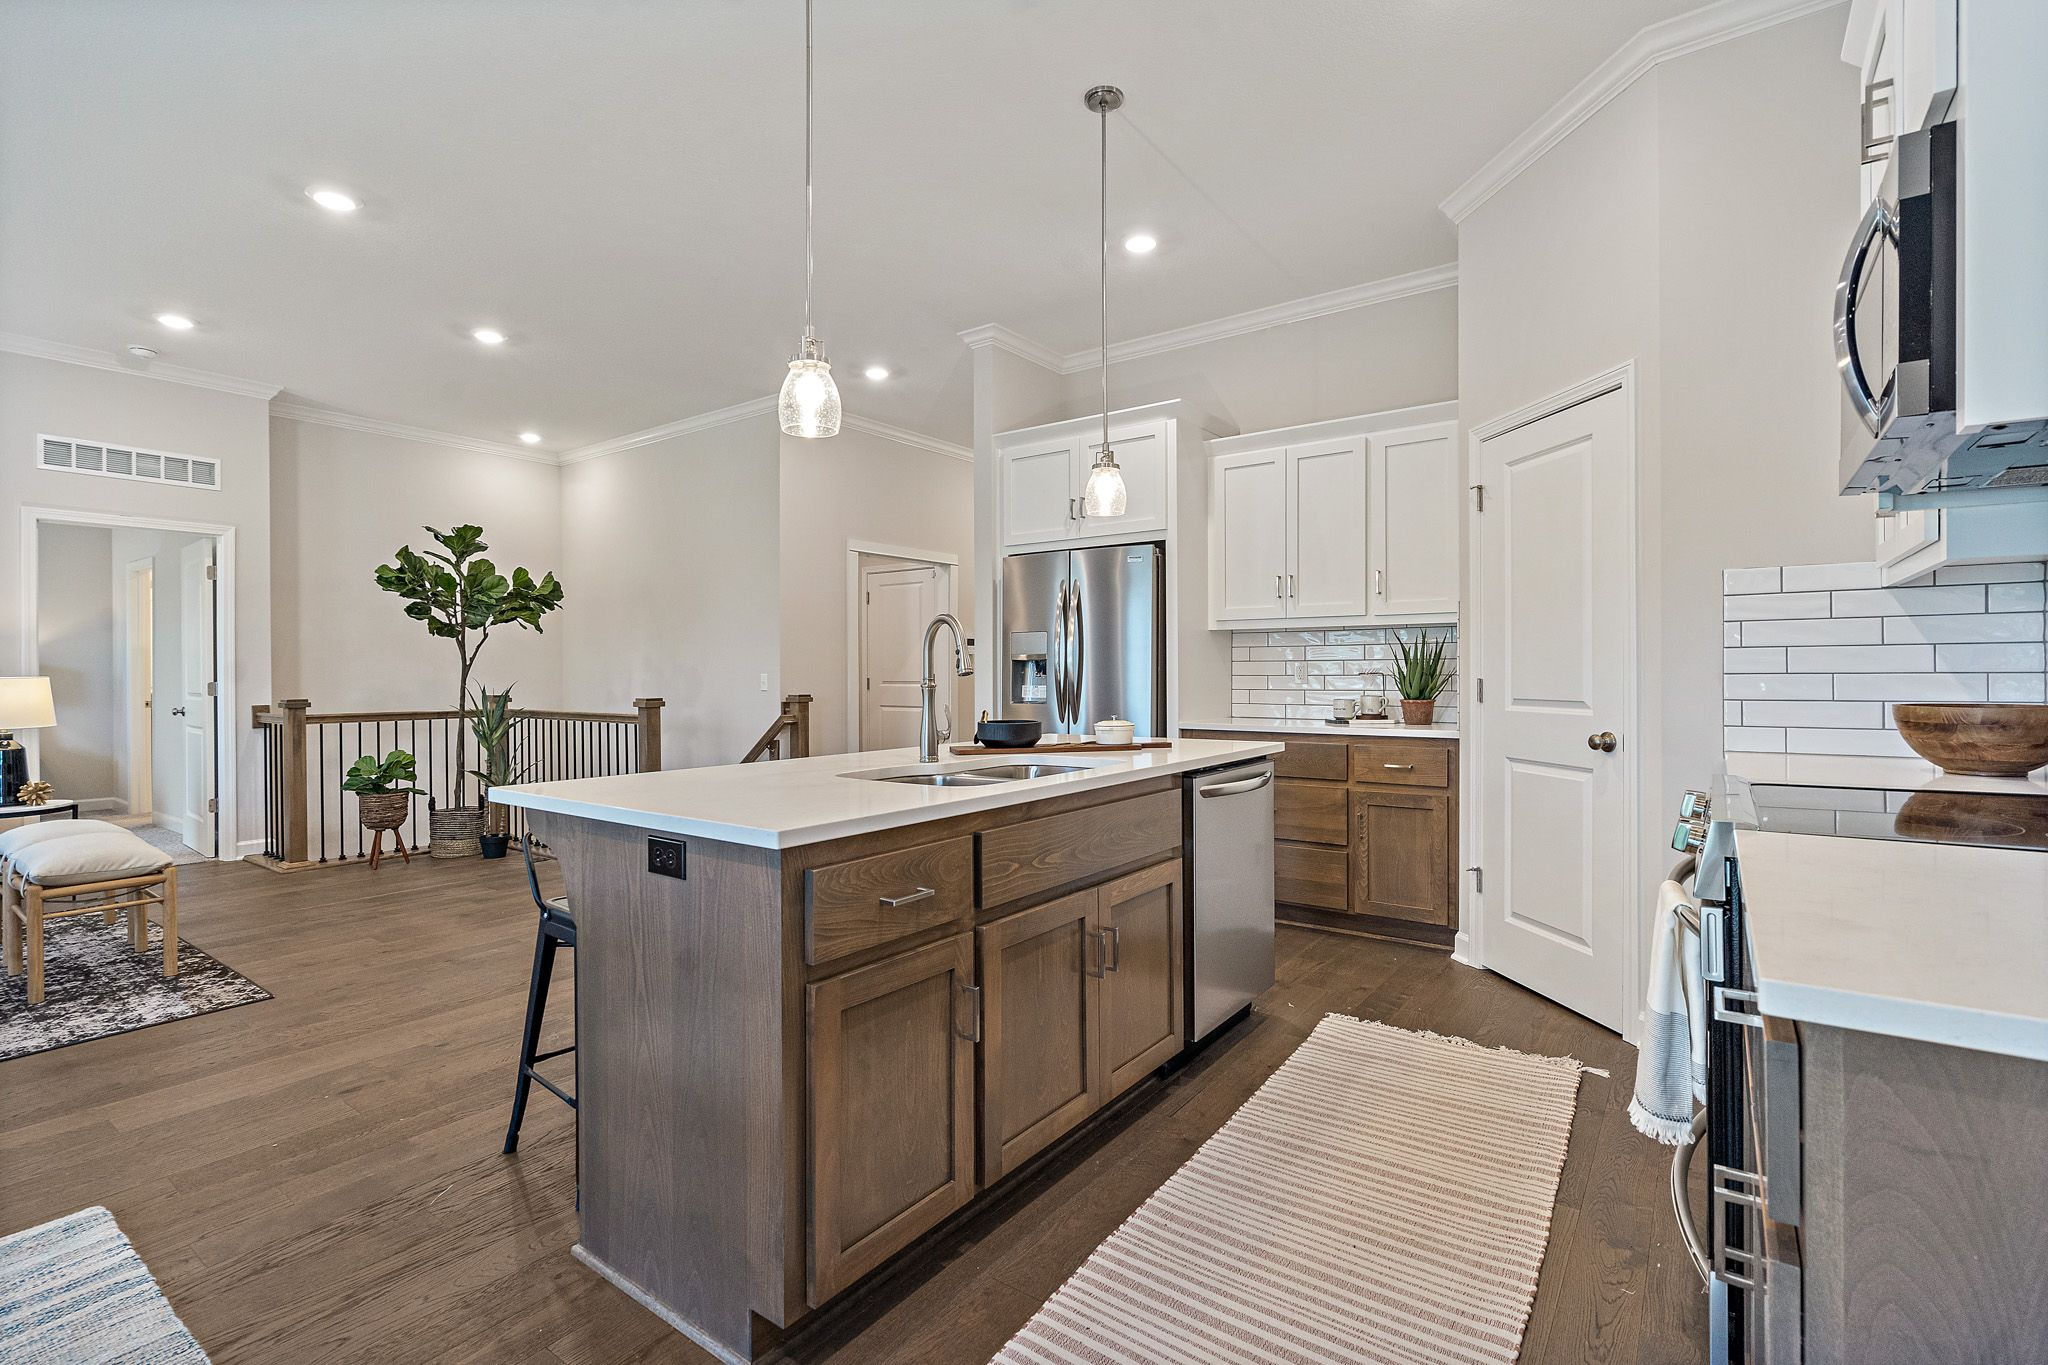 Kitchen featured in the Westport - Care Free By Summit Homes in Kansas City, MO